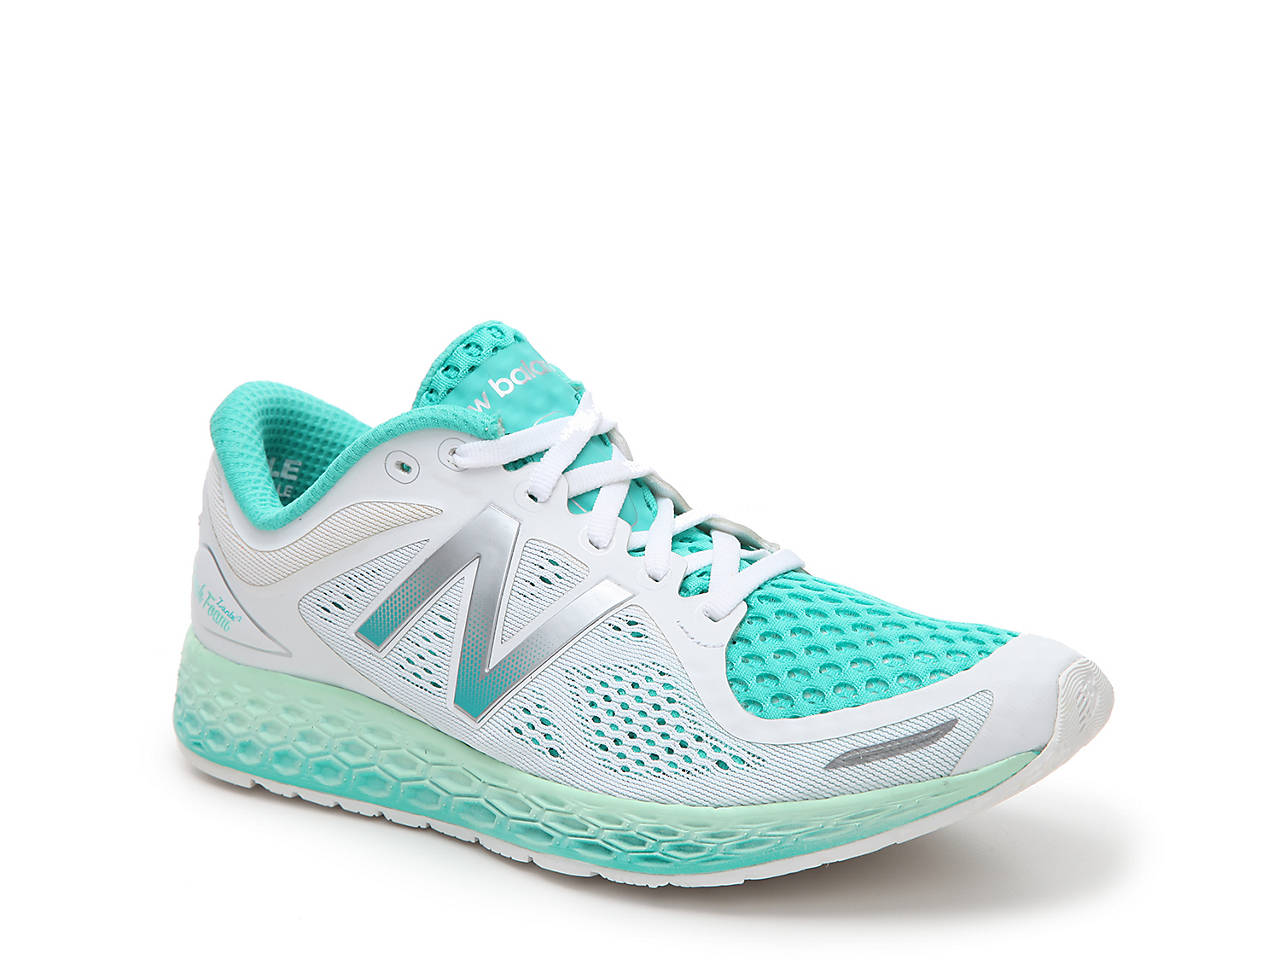 new balance zante womens. fresh foam zante v2 lightweight running shoe - women\u0027s new balance womens